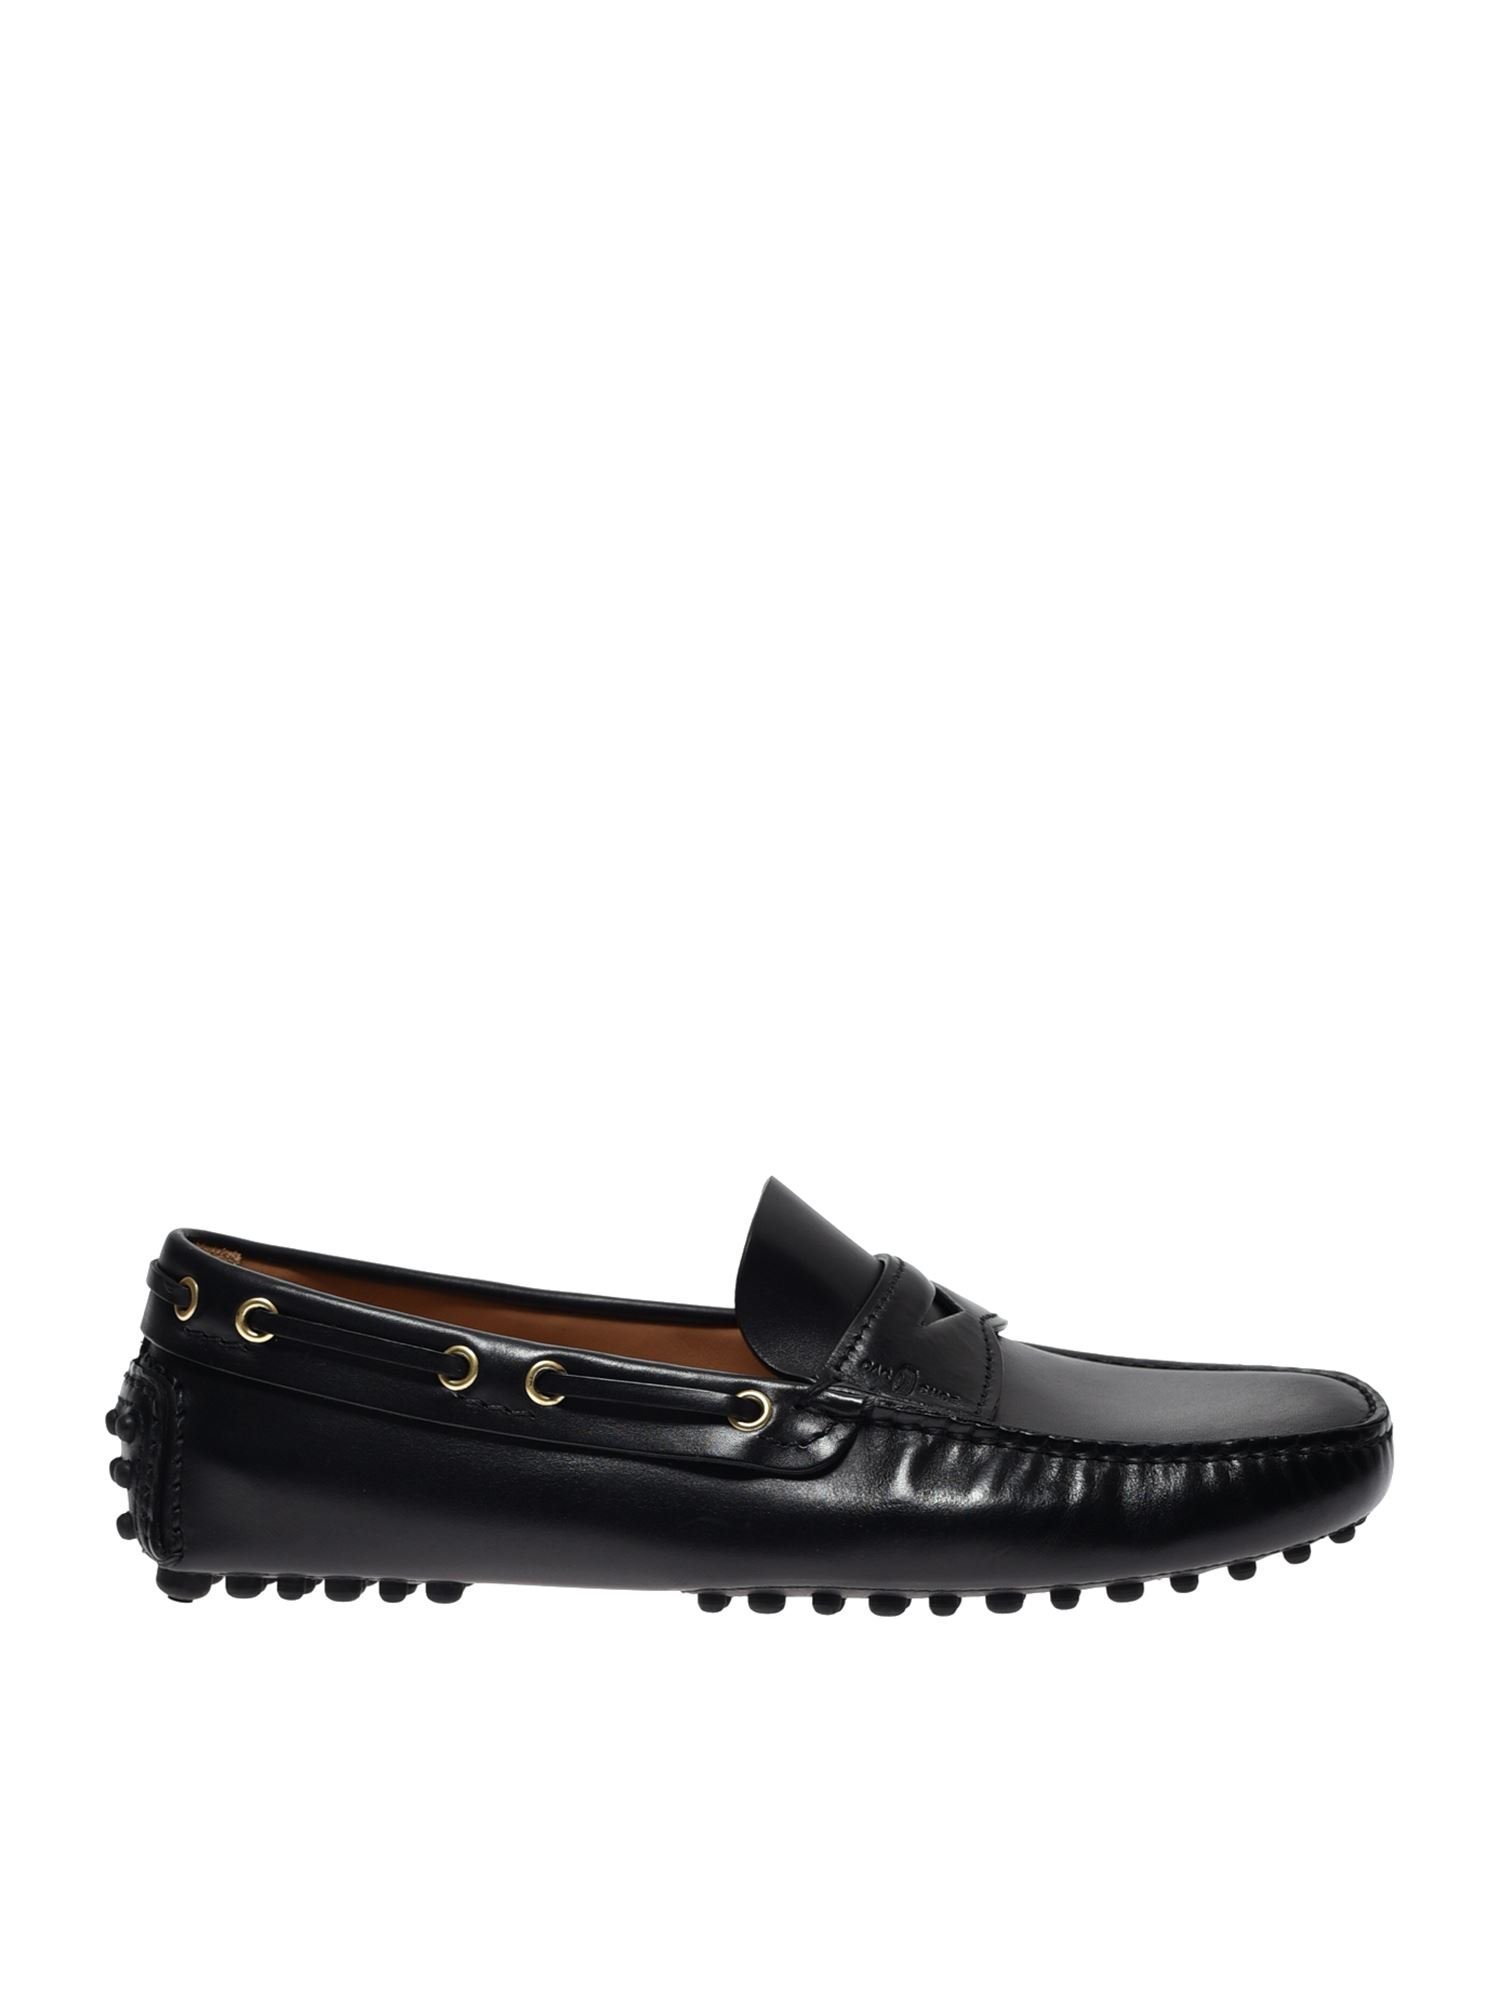 Car Shoe DRIVING MOCCASINS IN BLACK LEATHER